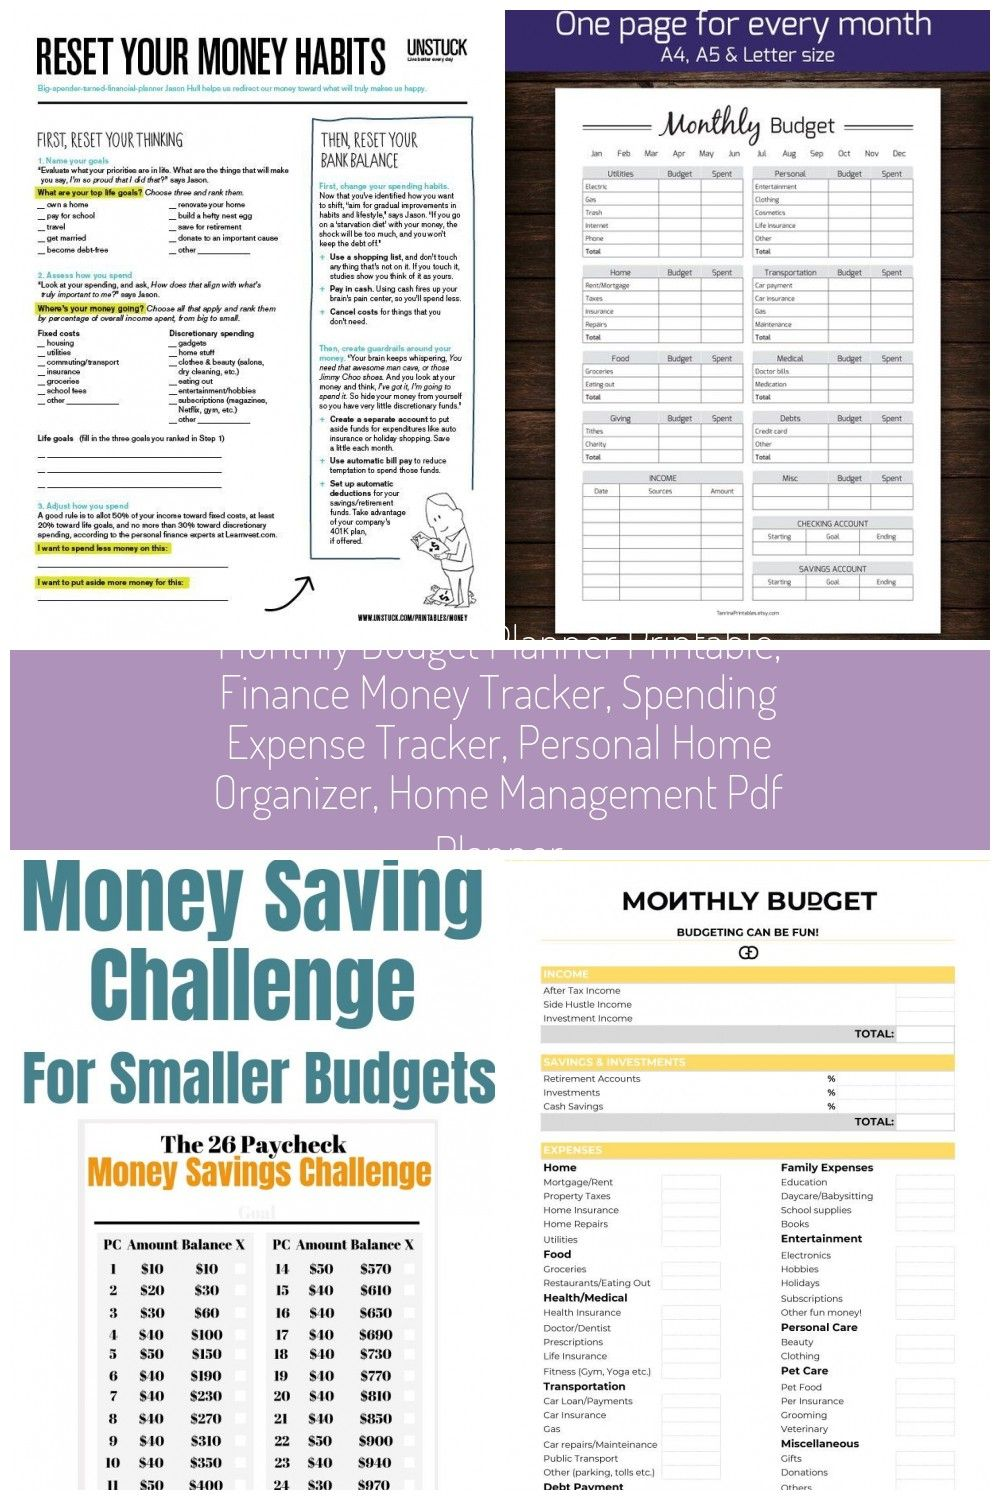 With the Monthly Budget Planner Printable you can keep